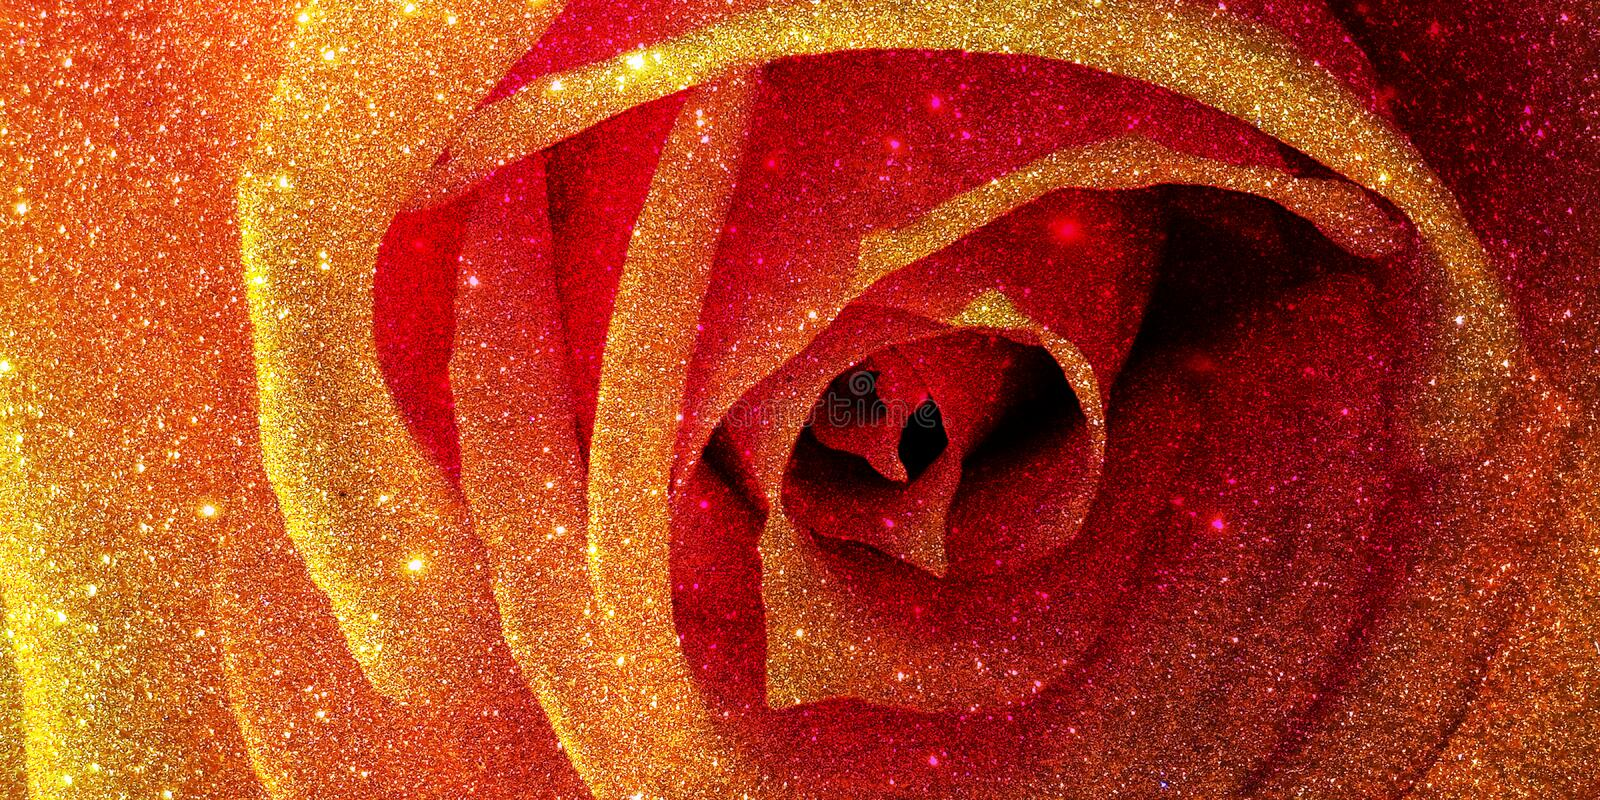 Glitter rose textured background royalty free stock photo